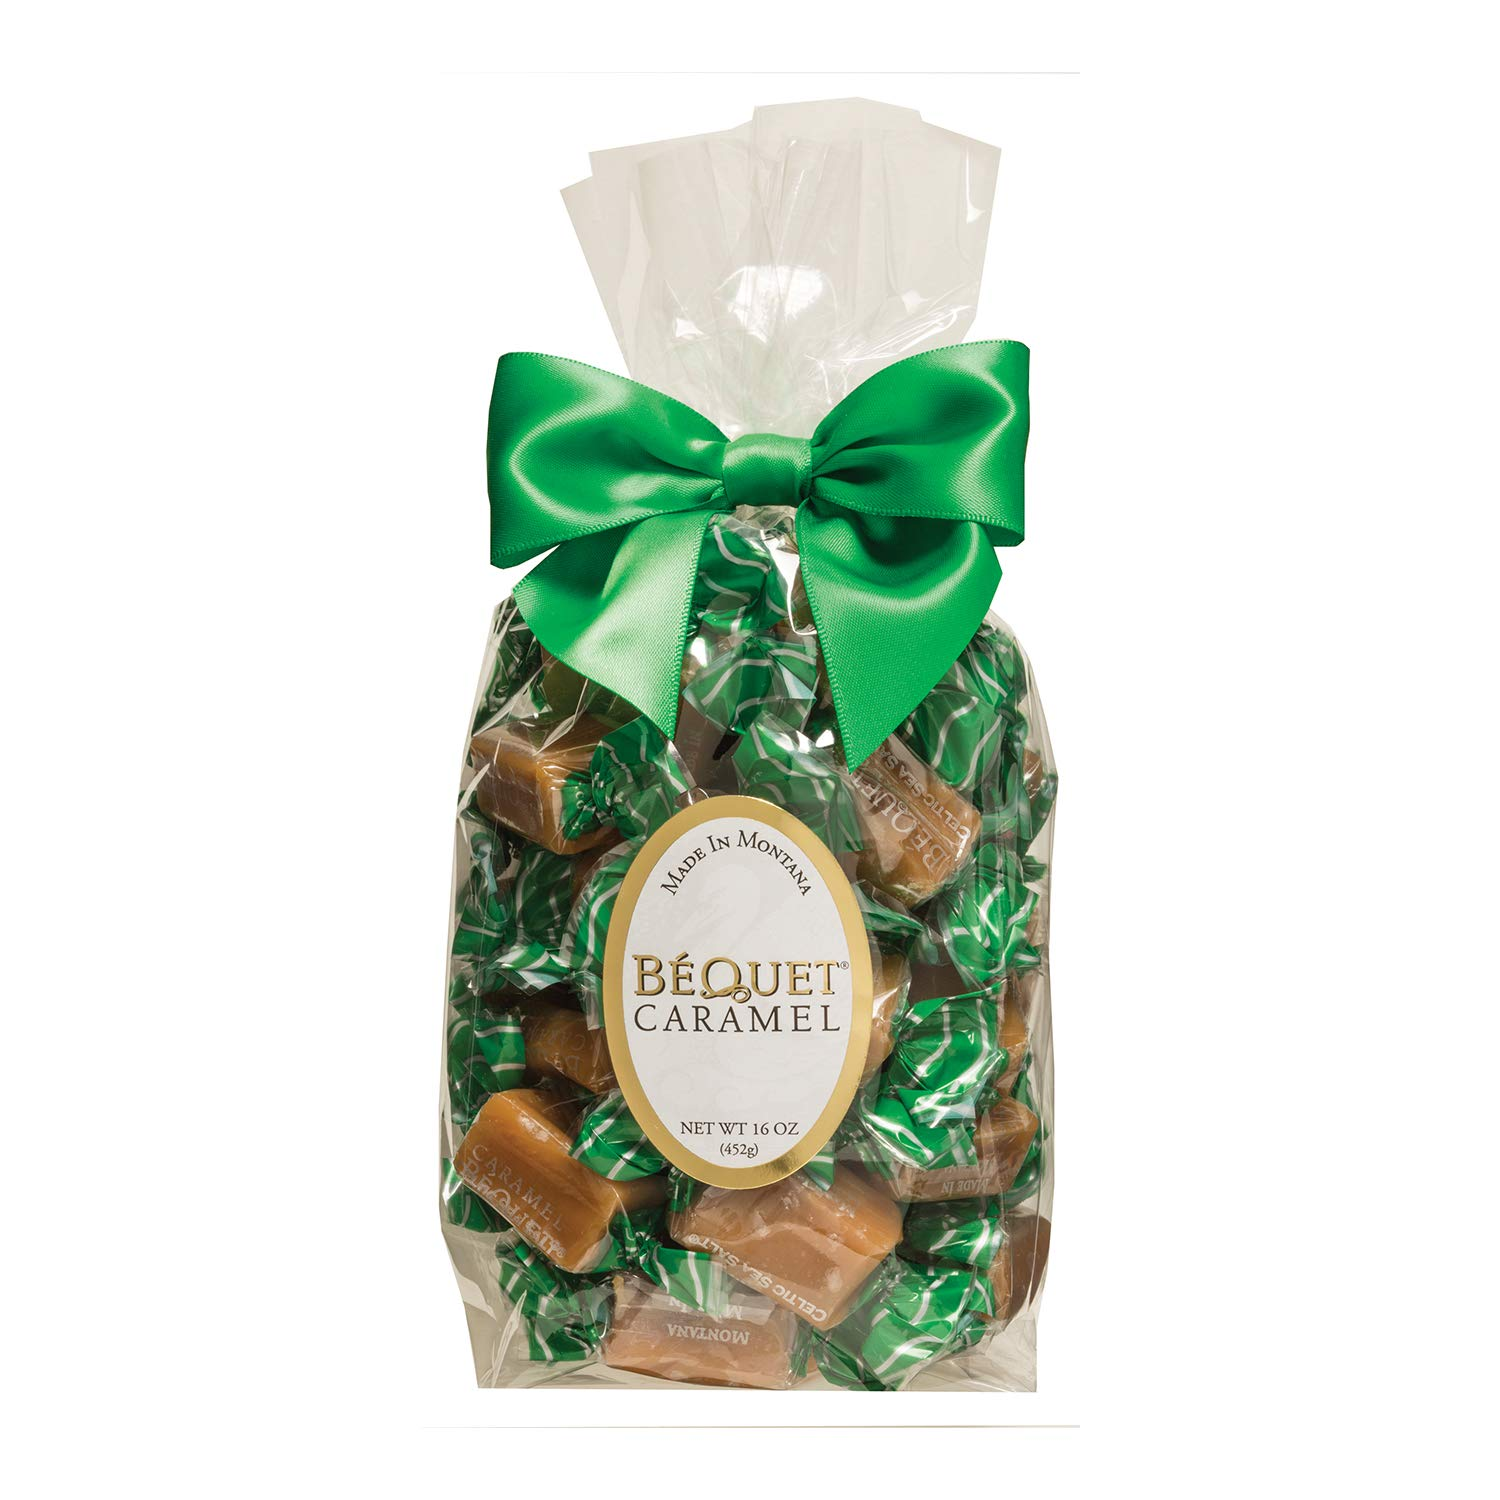 Bag with caramels in green wrapping